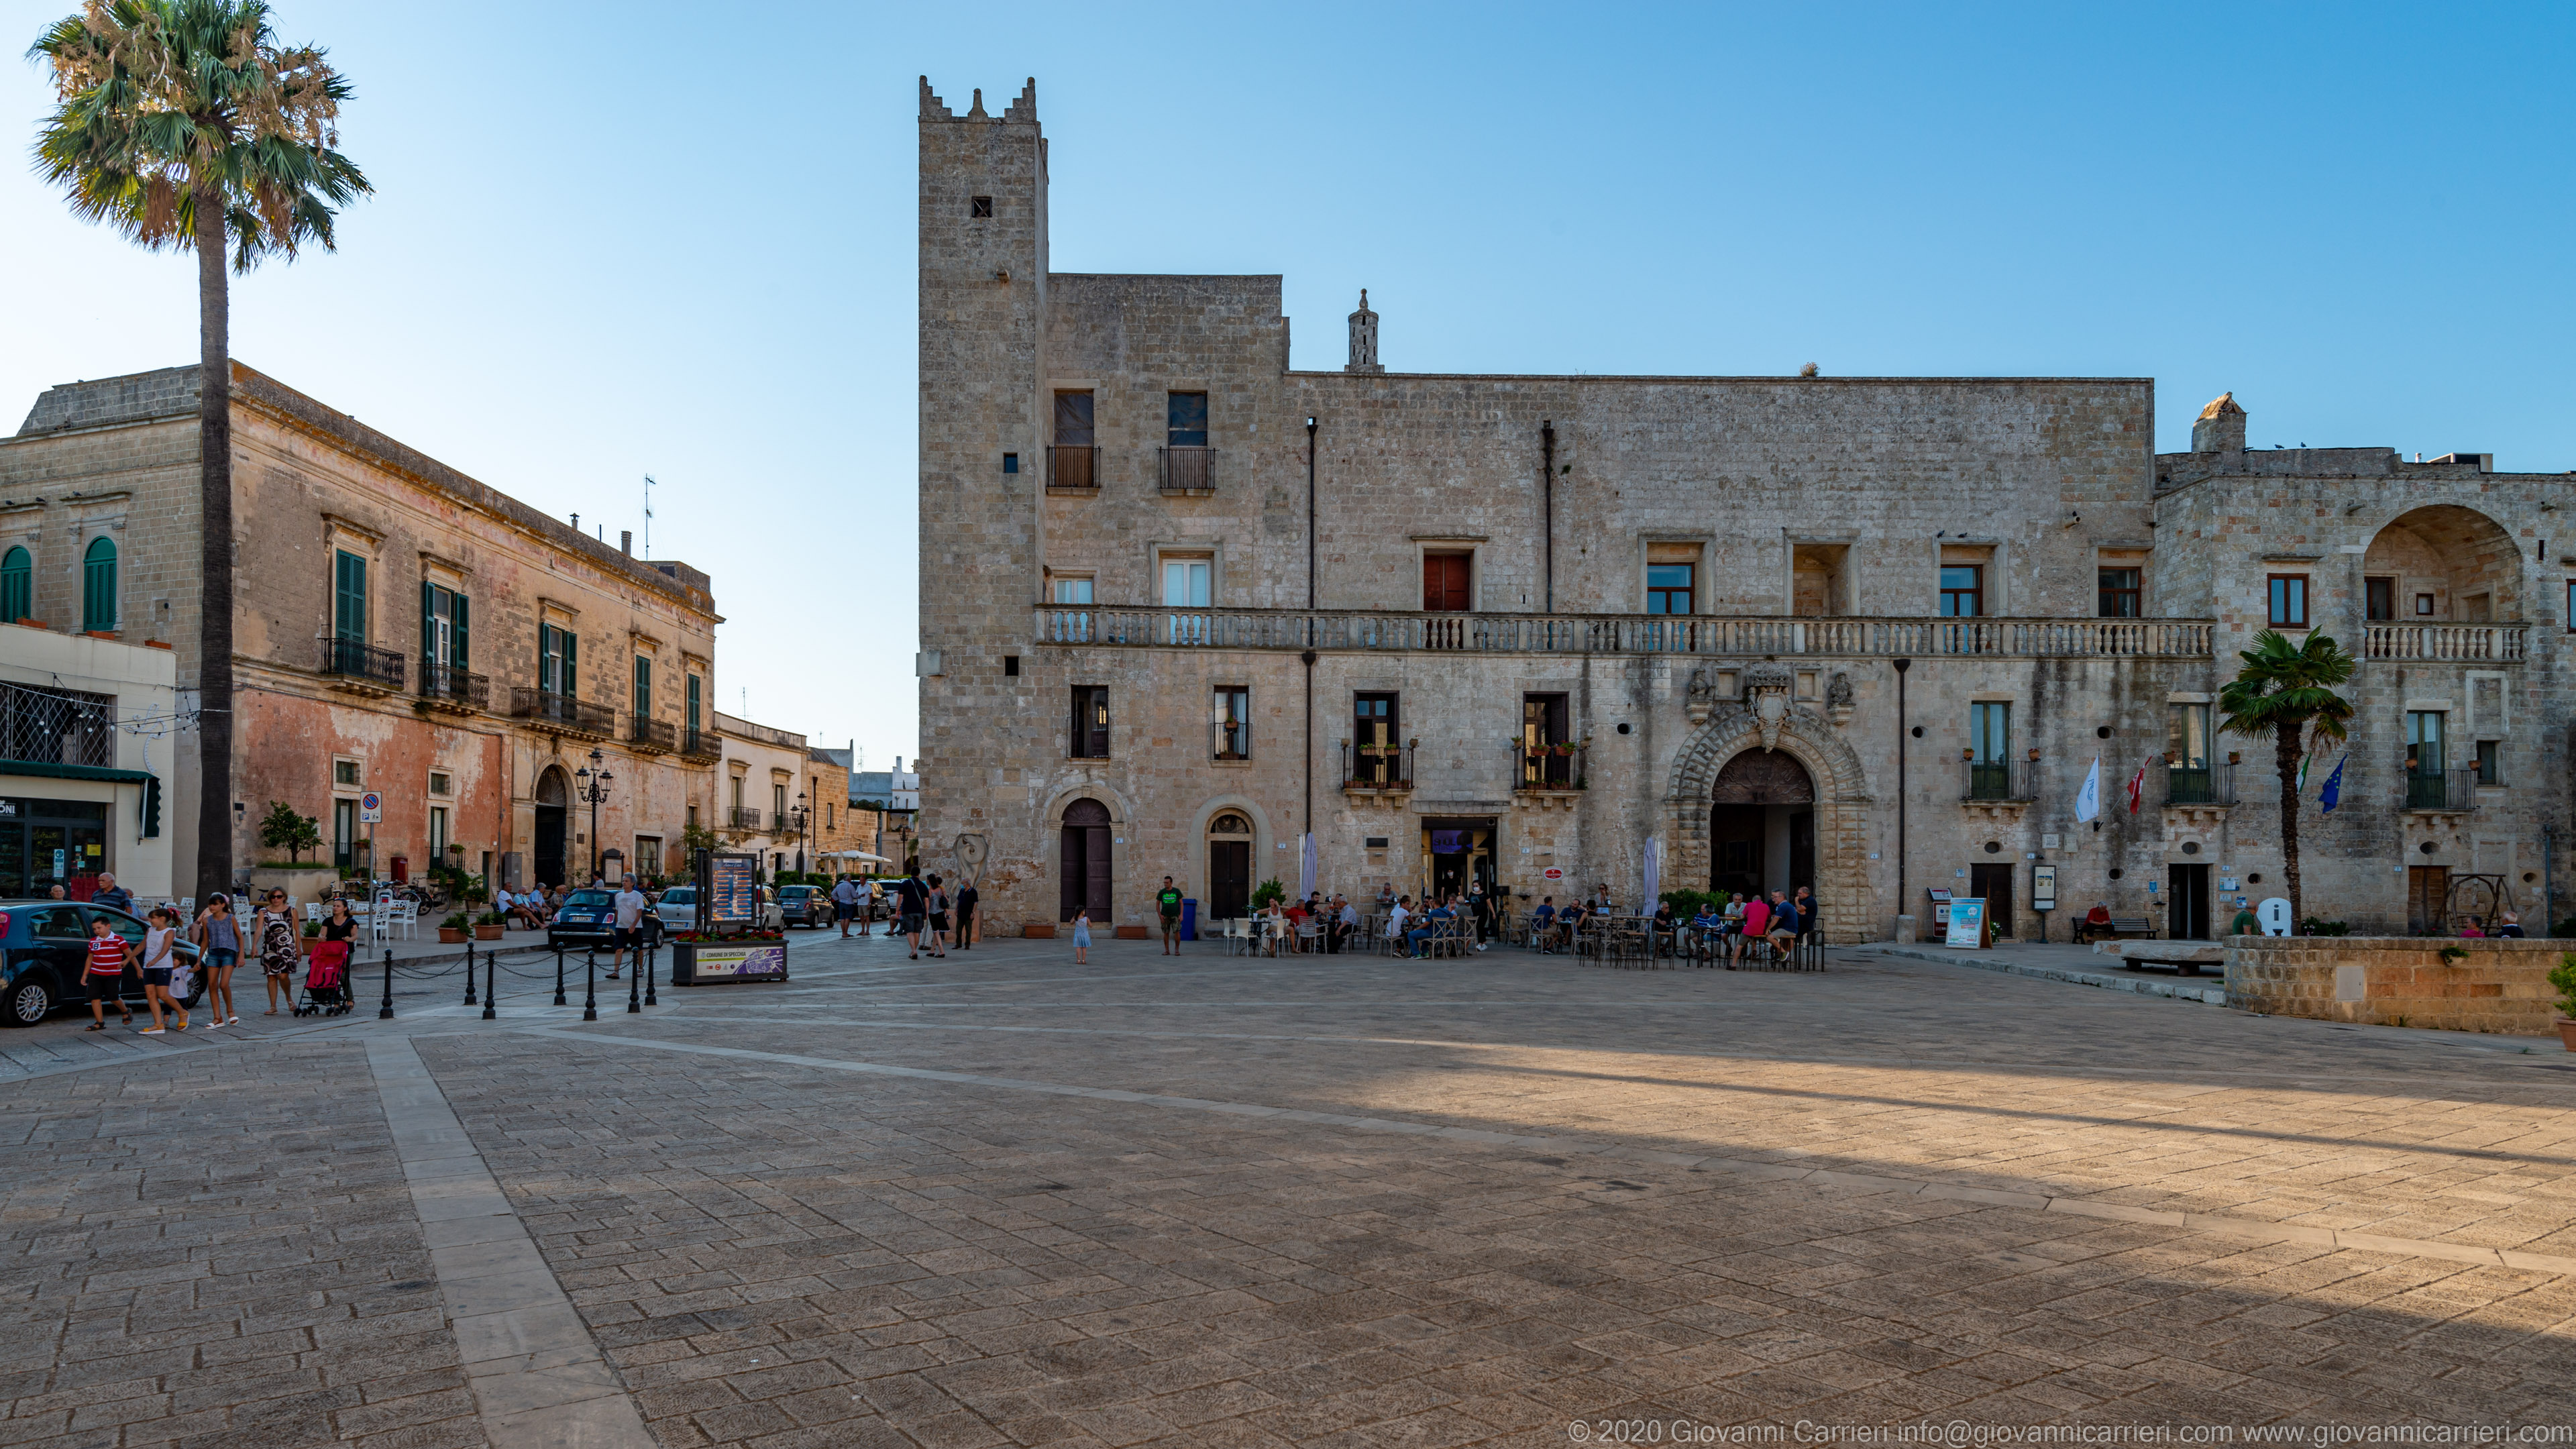 Protonobilissimo Risolo palace In the lovely Piazza del Popolo of Specchia, stands the Protonobilissimo Risolo Castle, which belonged to several families since the sixteenth century, embellishes the beautiful historic center of Salento.